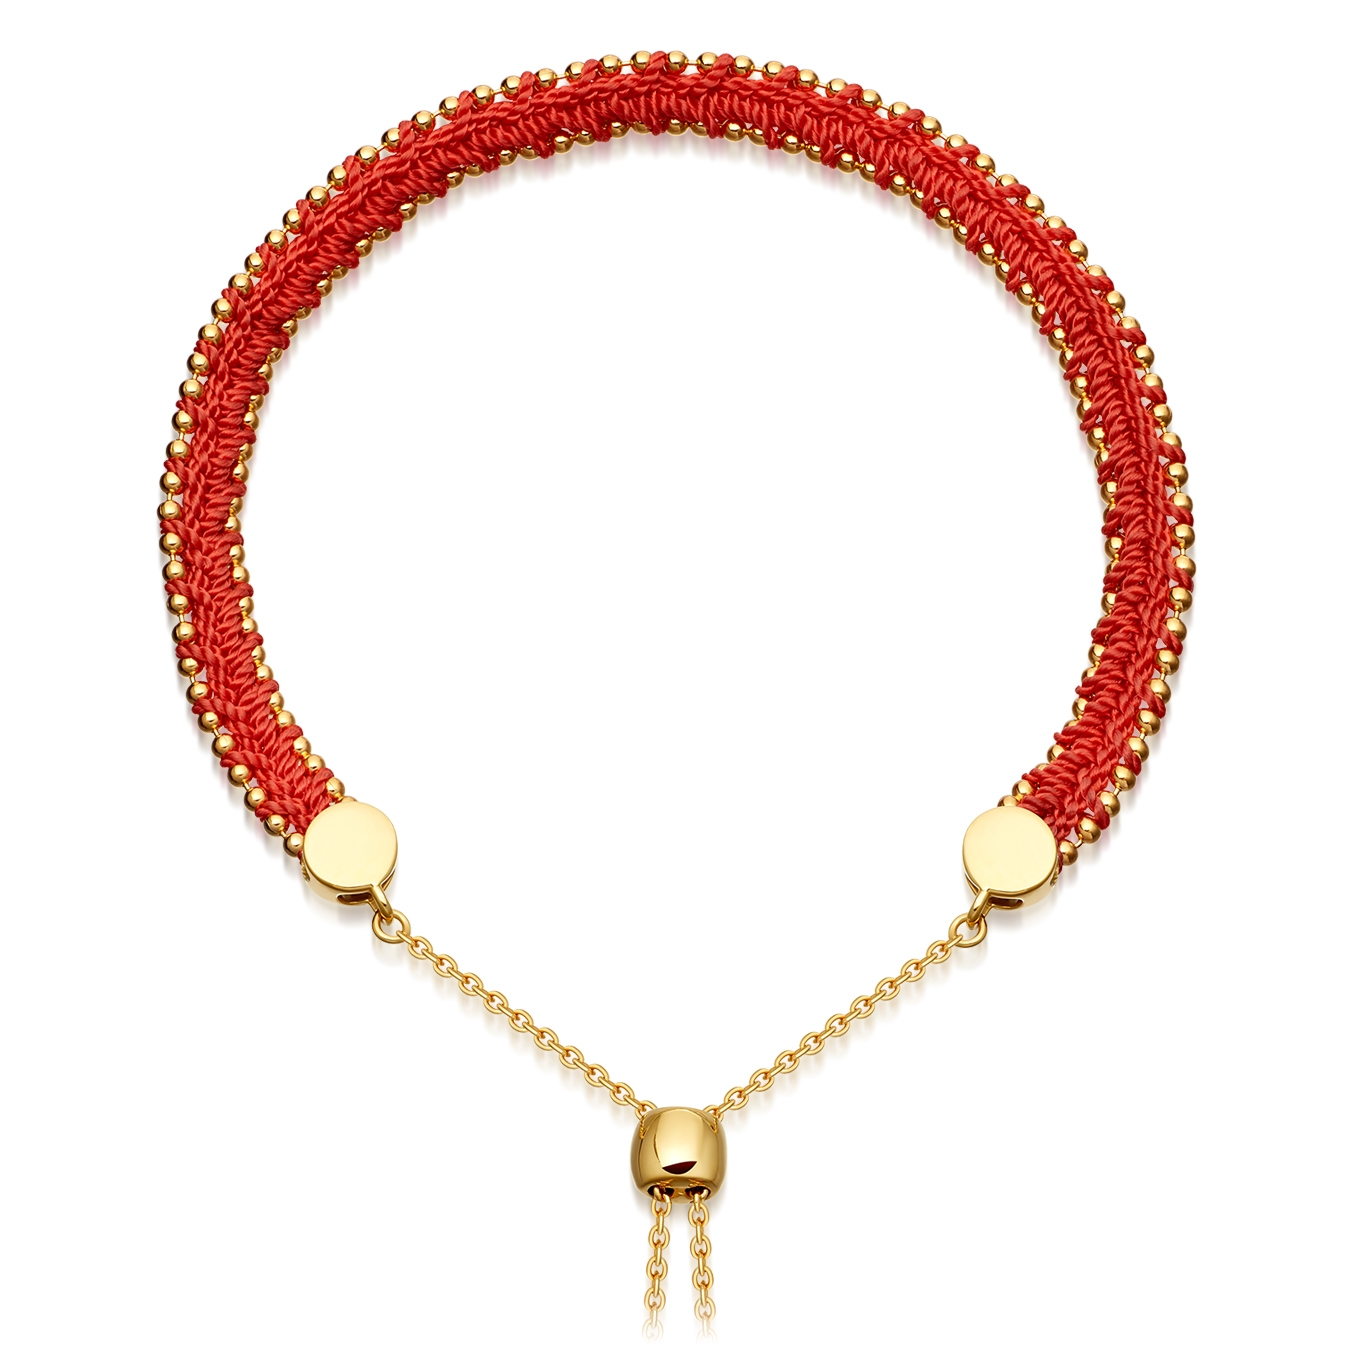 Hot Coral Woven Kula Biography Bracelet